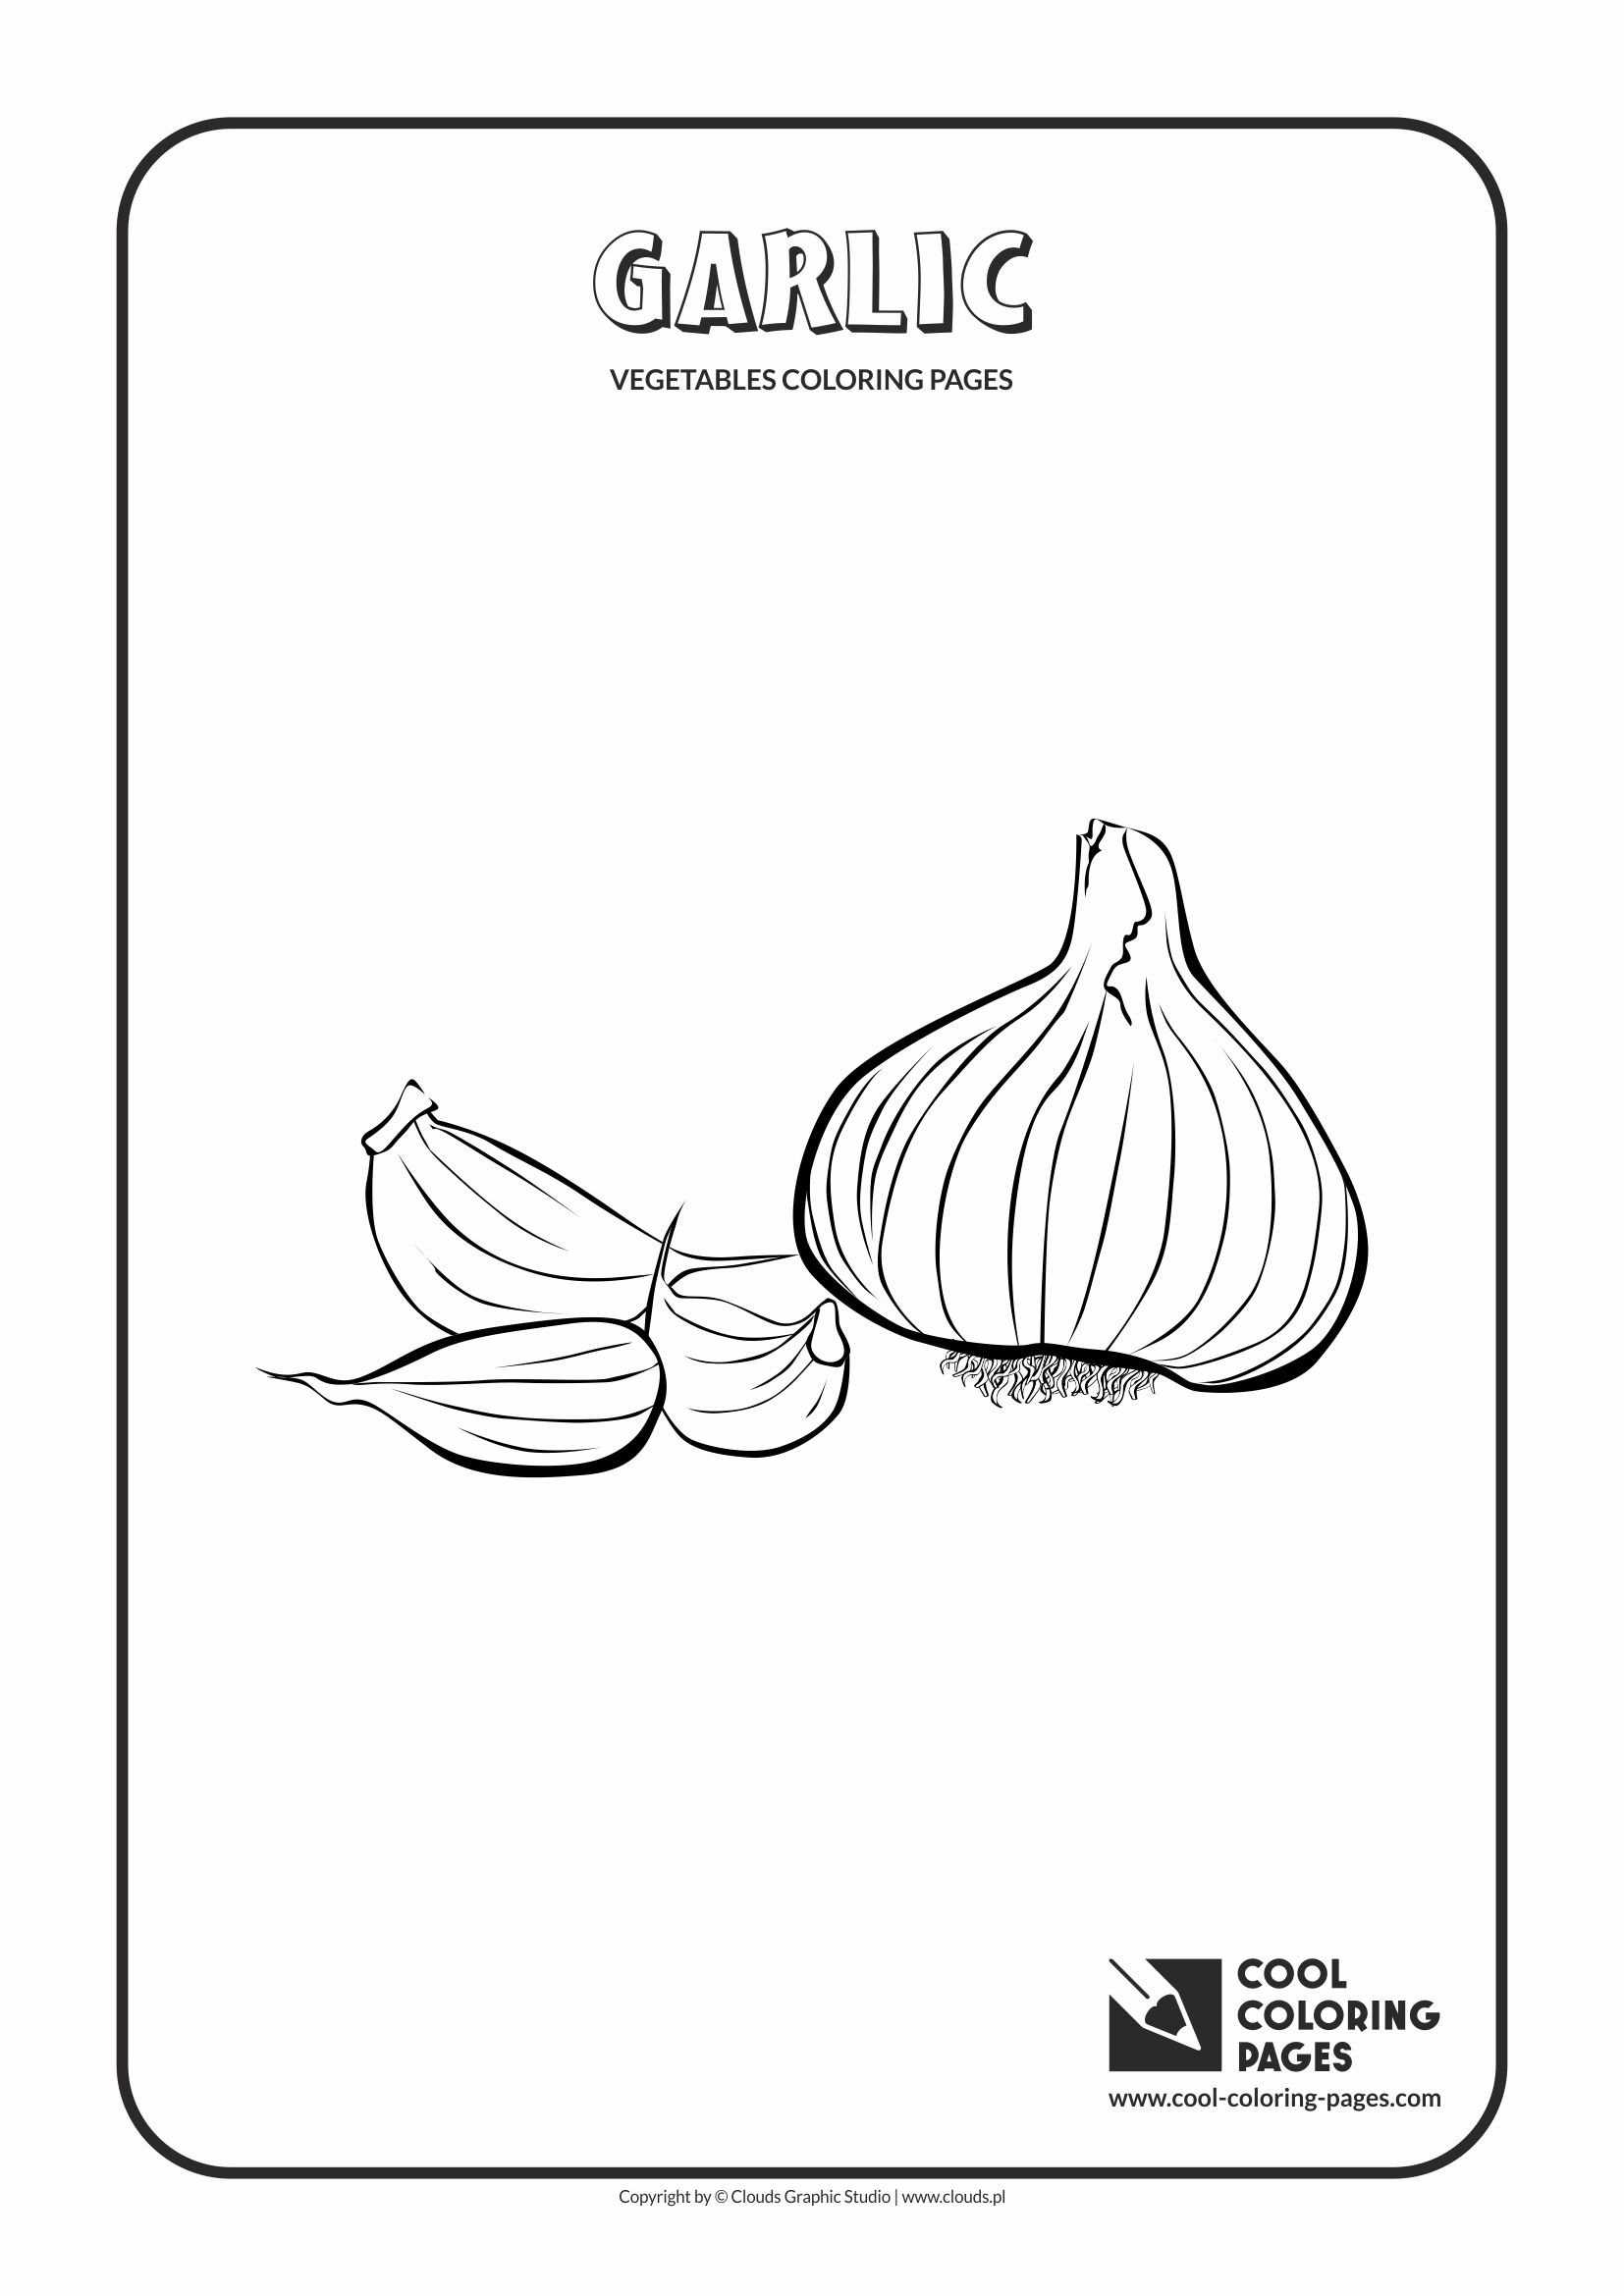 Cool Coloring Pages - Plants / Garlic / Coloring page with garlic